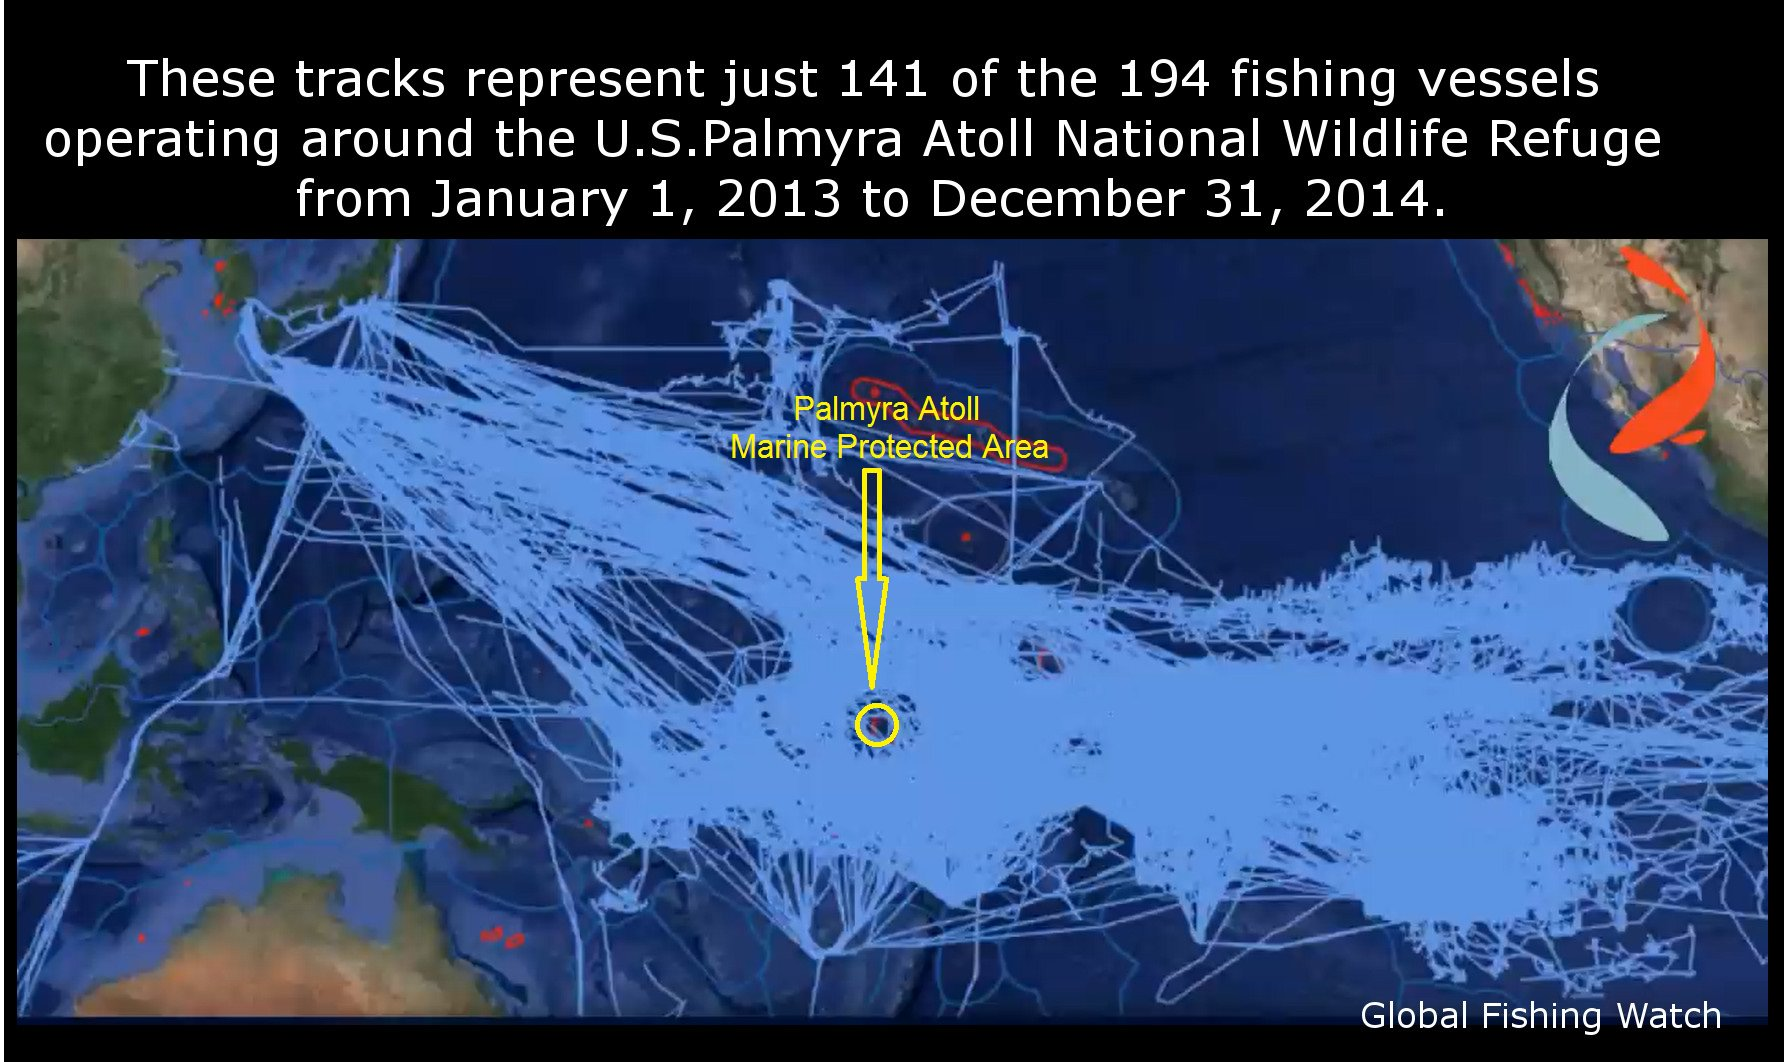 Using the Global Fishing Watch Map, we are able to see the tracks of fishing vessels operating around U.S. Palmyra Atoll National Wildlife Refuge. /Credit Global Fishing Watch